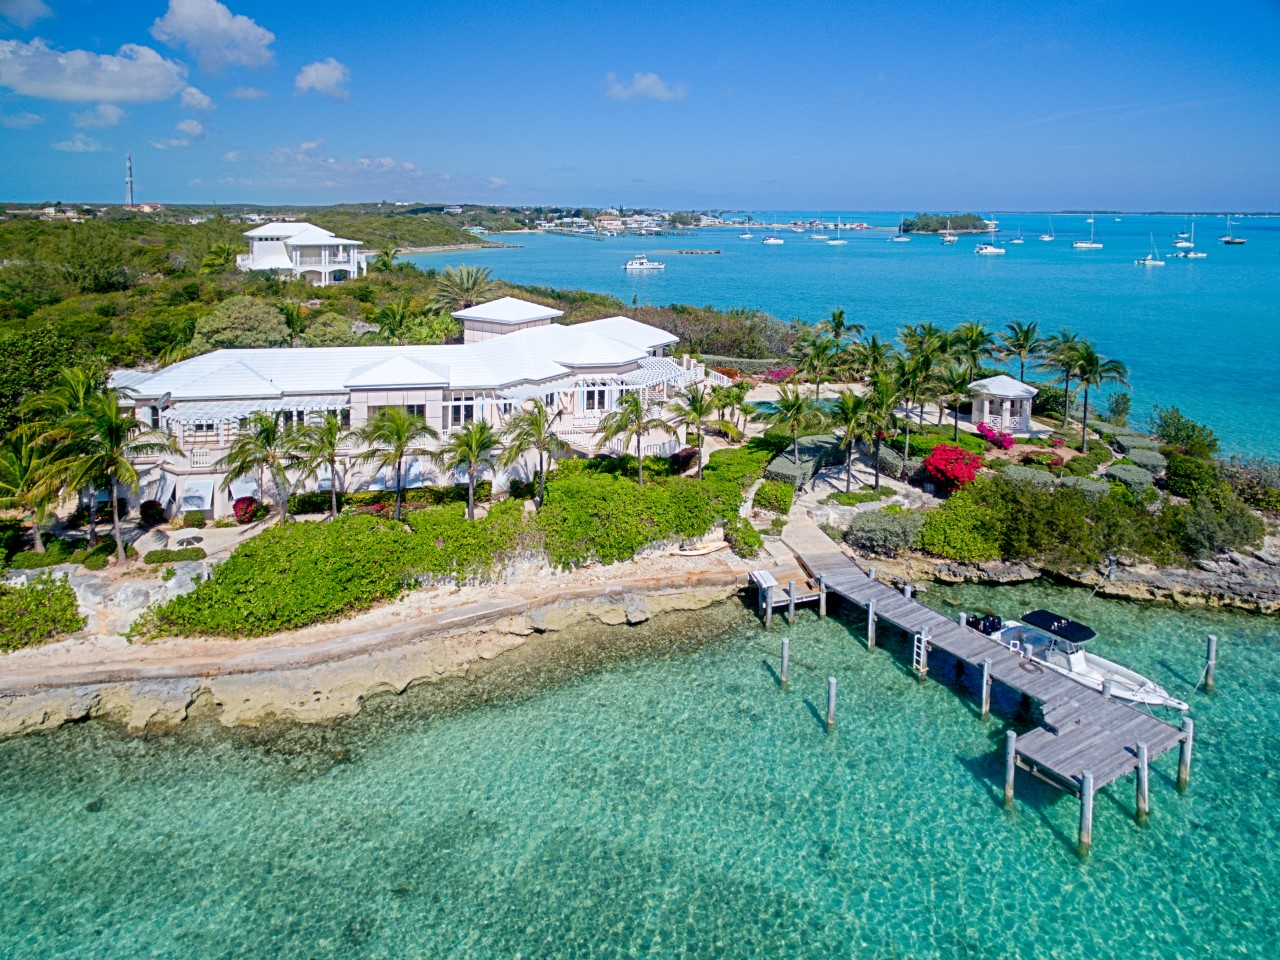 Exuma Real Estate And Property In The Bahama Islands For Sale